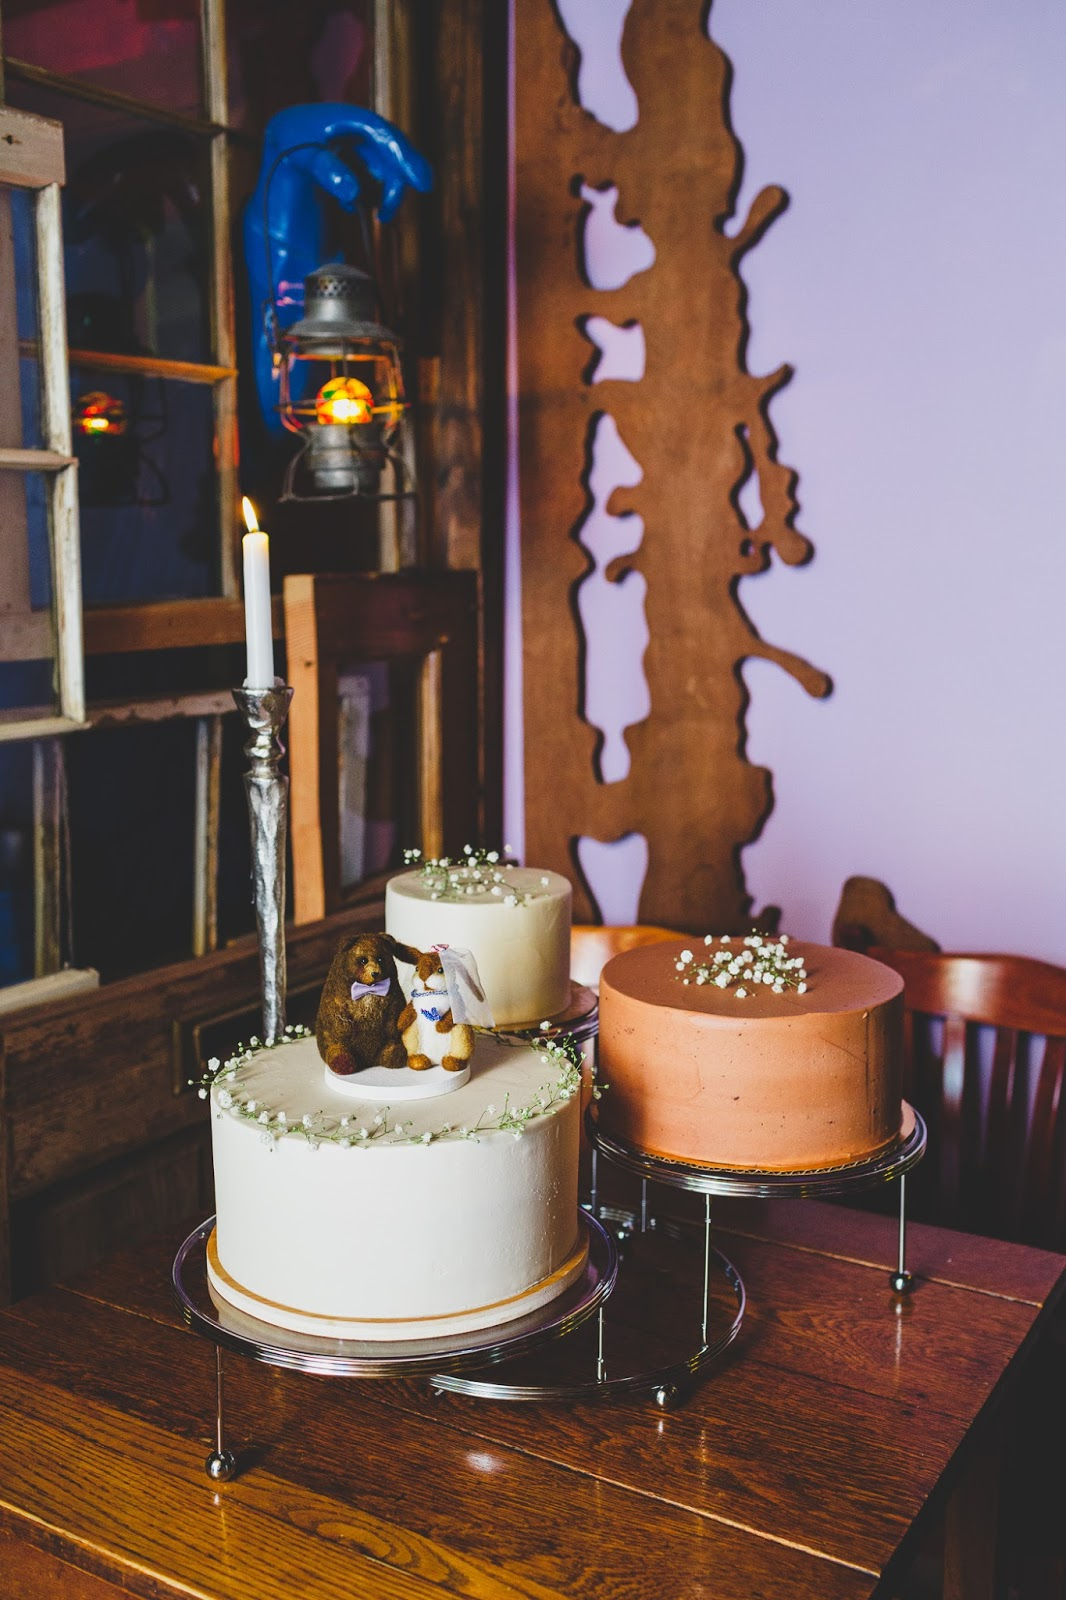 Simple vegan wedding cakes by Sweet Maresa's | Upstate New York wedding photographer - blog.cassiecastellaw.com